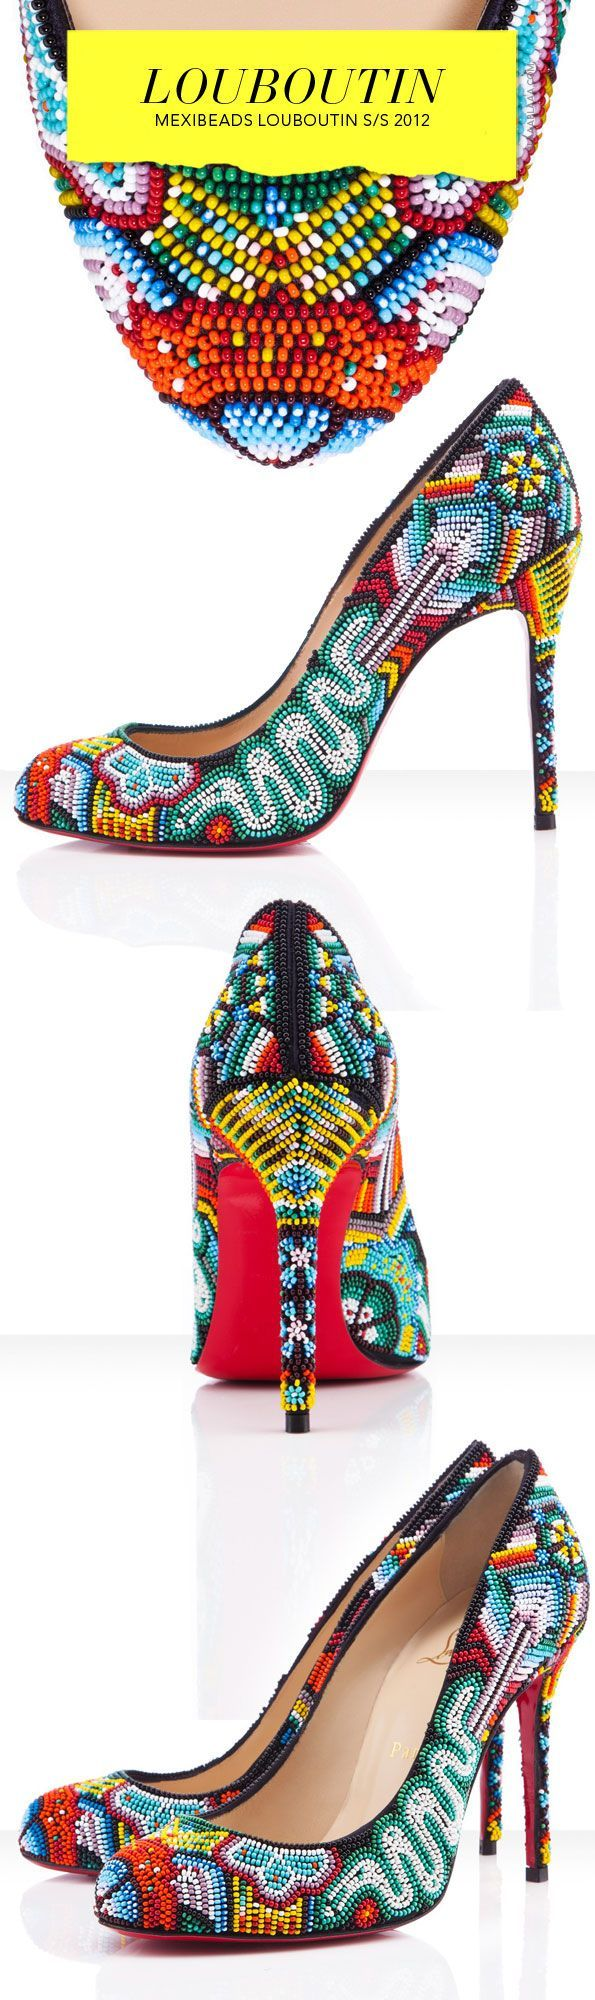 Mexibeads Louboutin: pumps inspired in Huichol art, embroidered with tiny multicolor pearls.